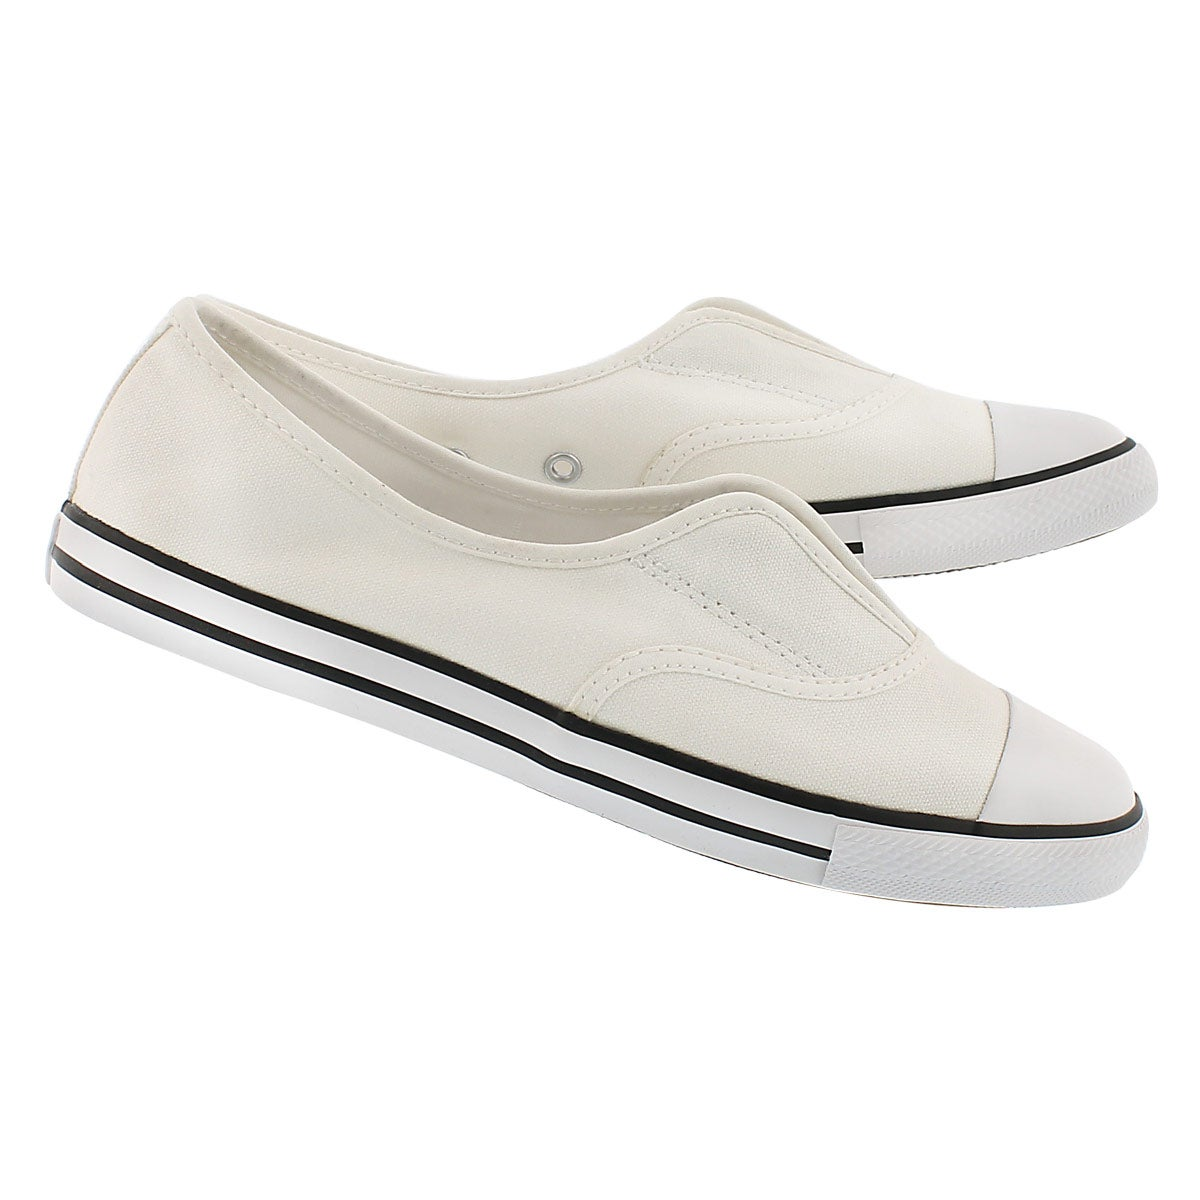 Lds CT AllStar Cove Canvas wht slip on